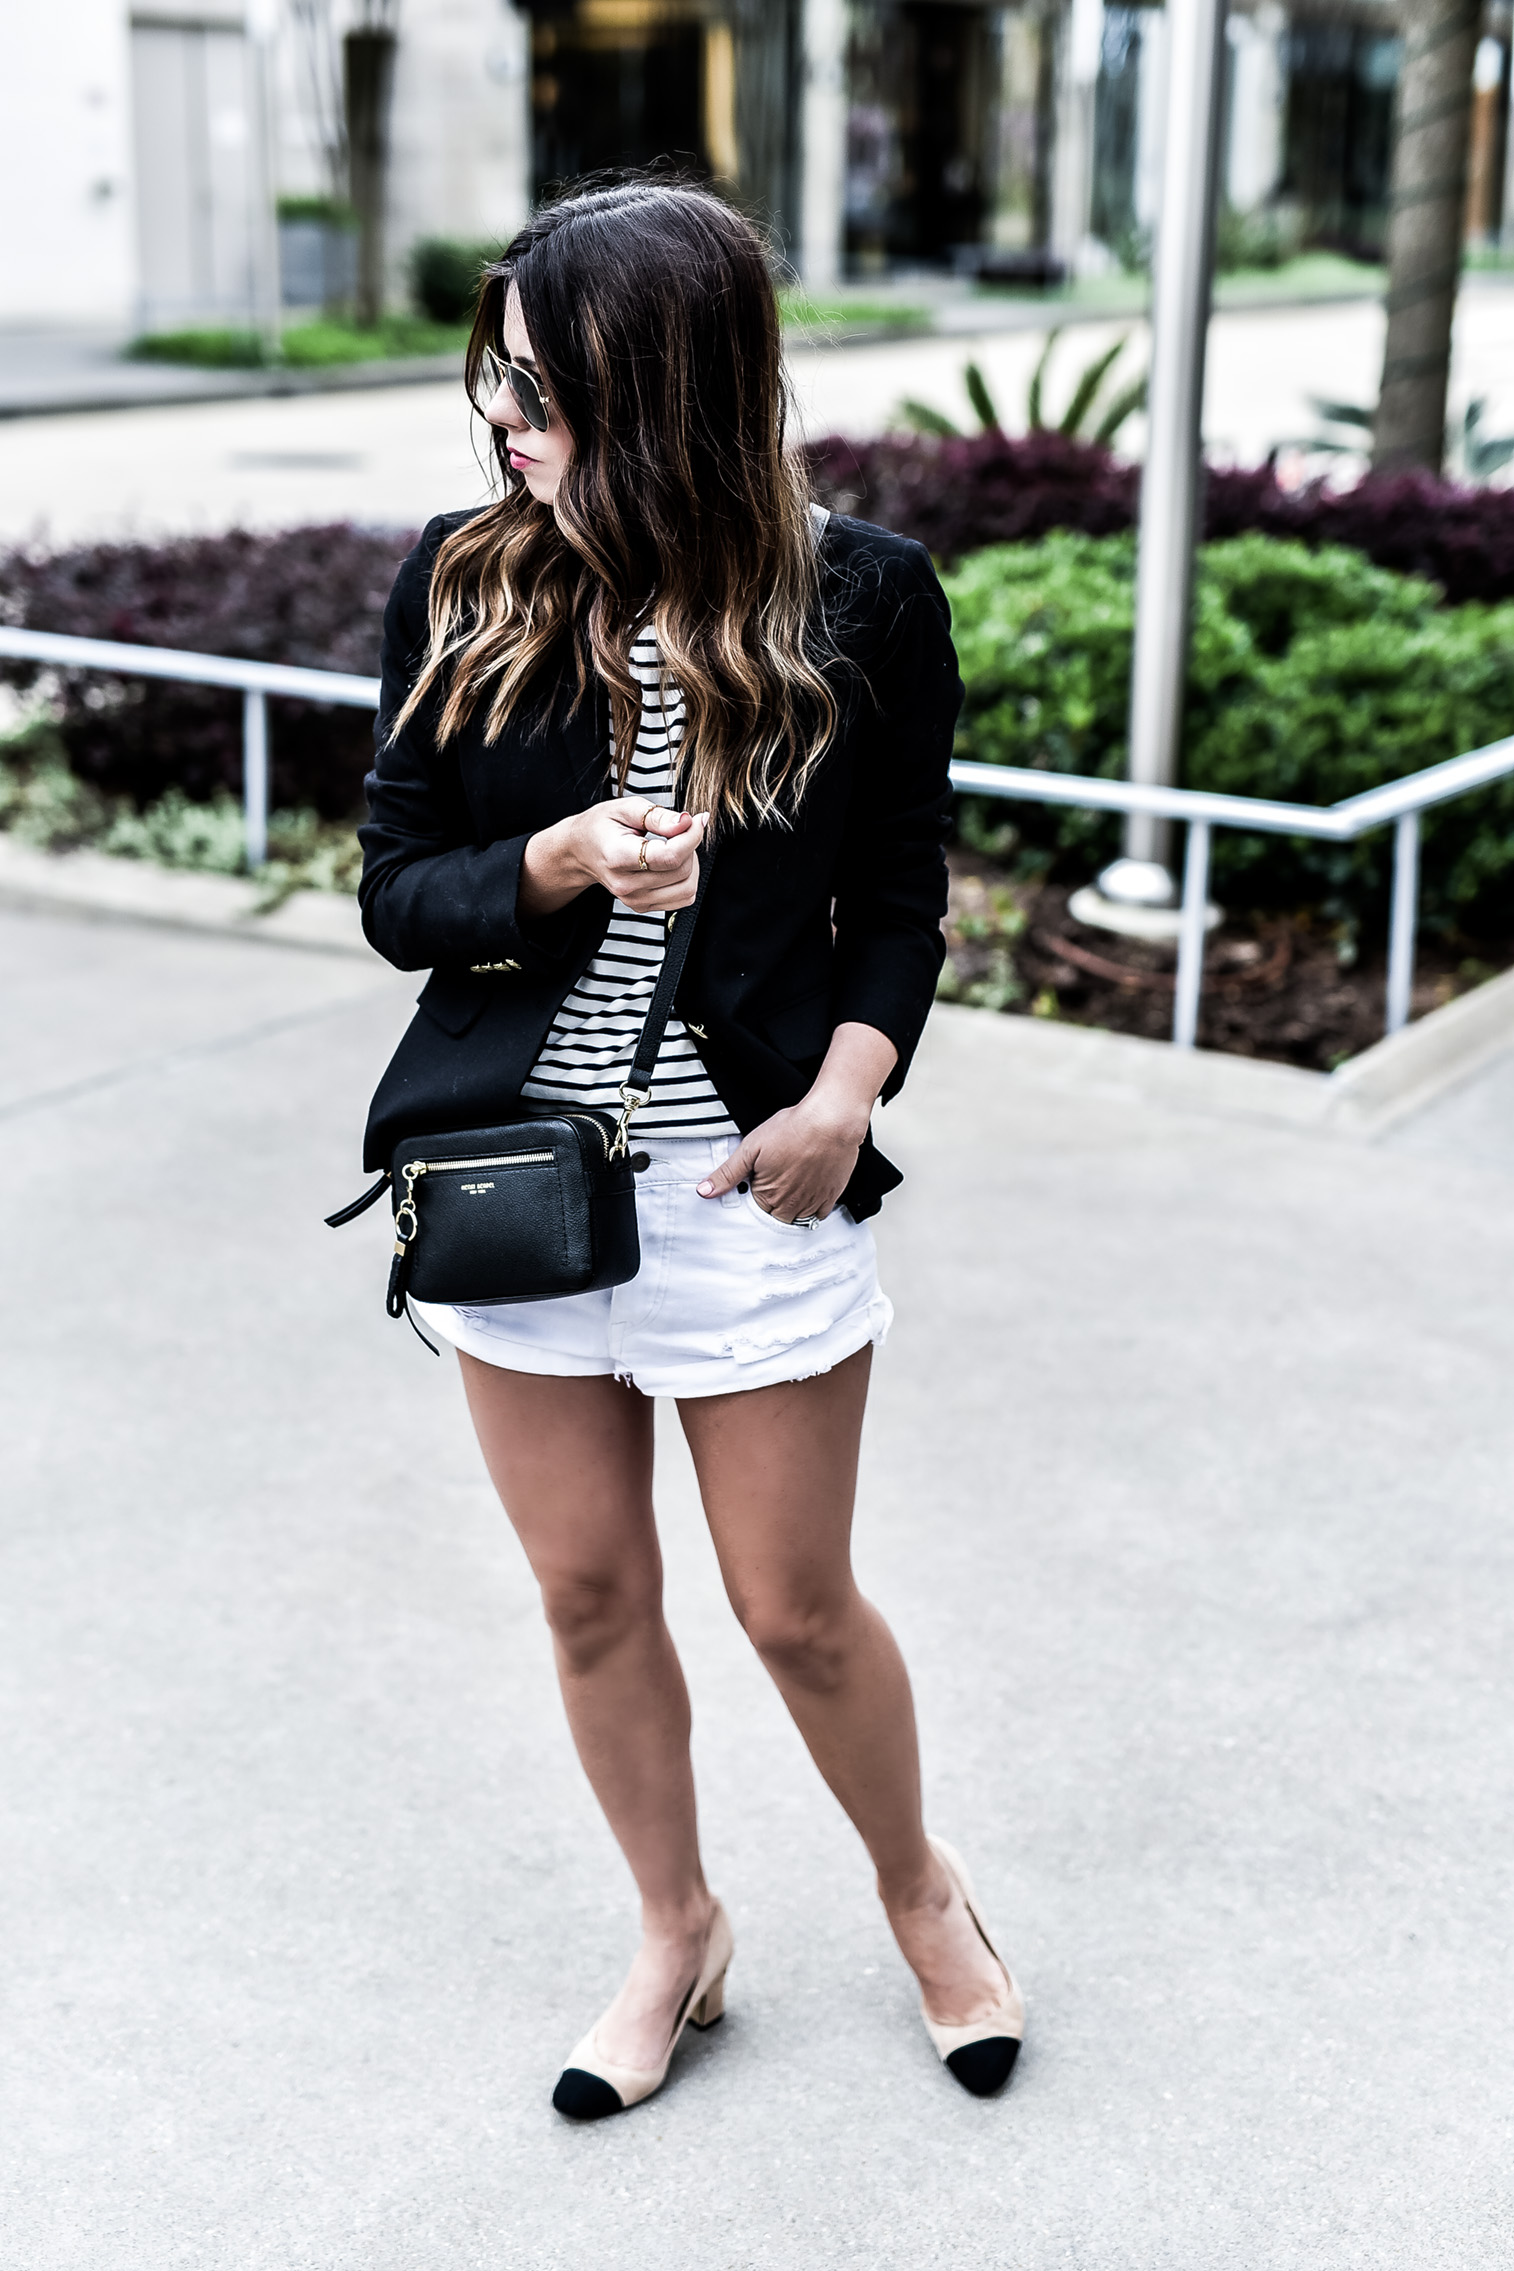 Houston fashion and lifestyle blogger Tiffany Jais sharing how she created a minimalist wardrobe and hacks for getting ready faster! Click to read the post! | Streetstyle, fashionista, outfits for school, outfit ideas, classic pieces, blazer outfits, blazer with shorts outfits